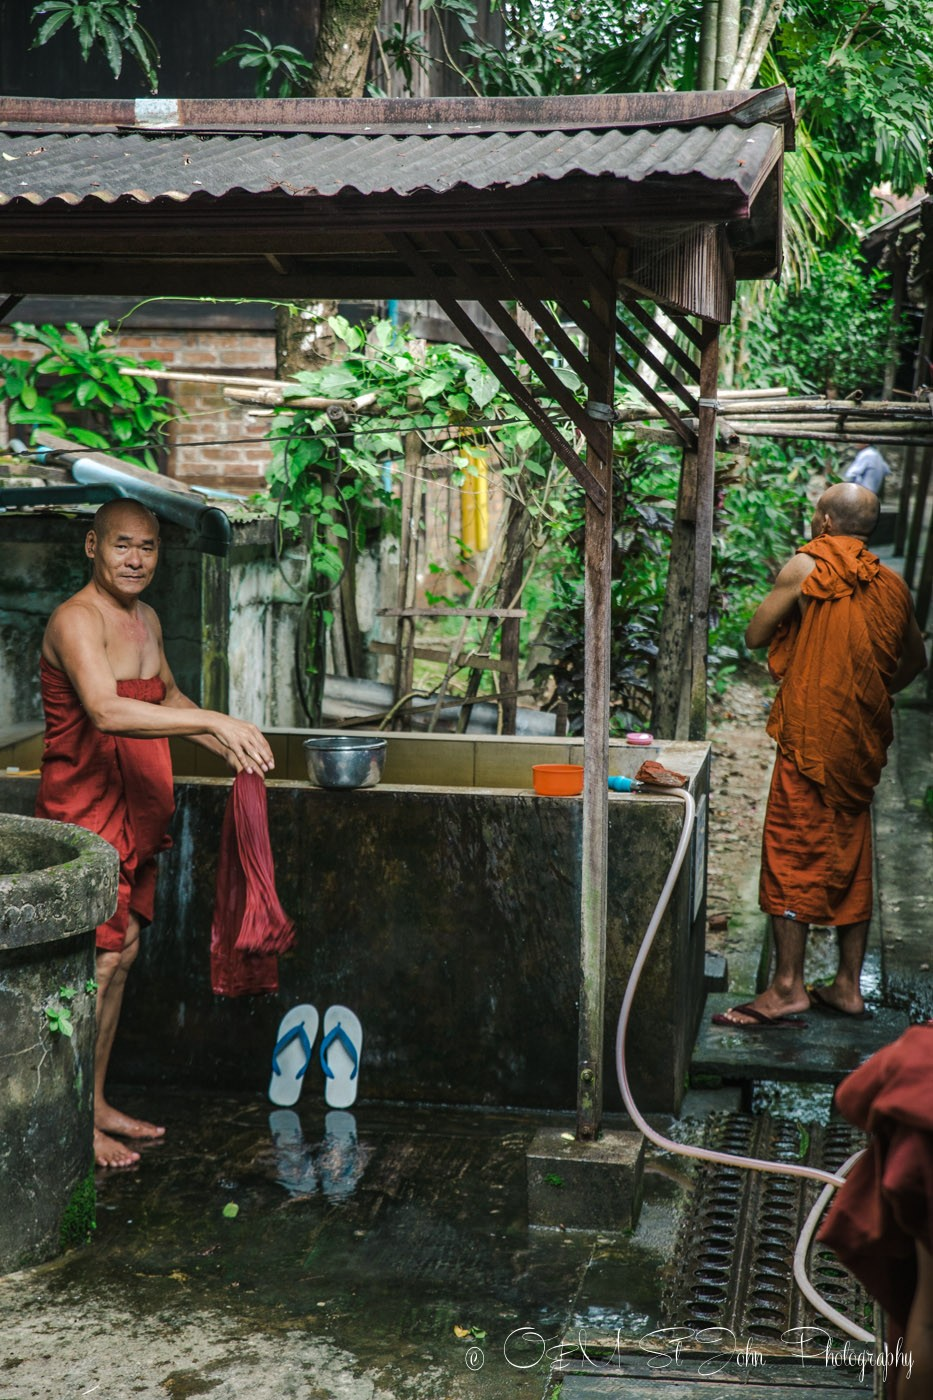 Monks showering at the monastery. Yangon, Myanmar